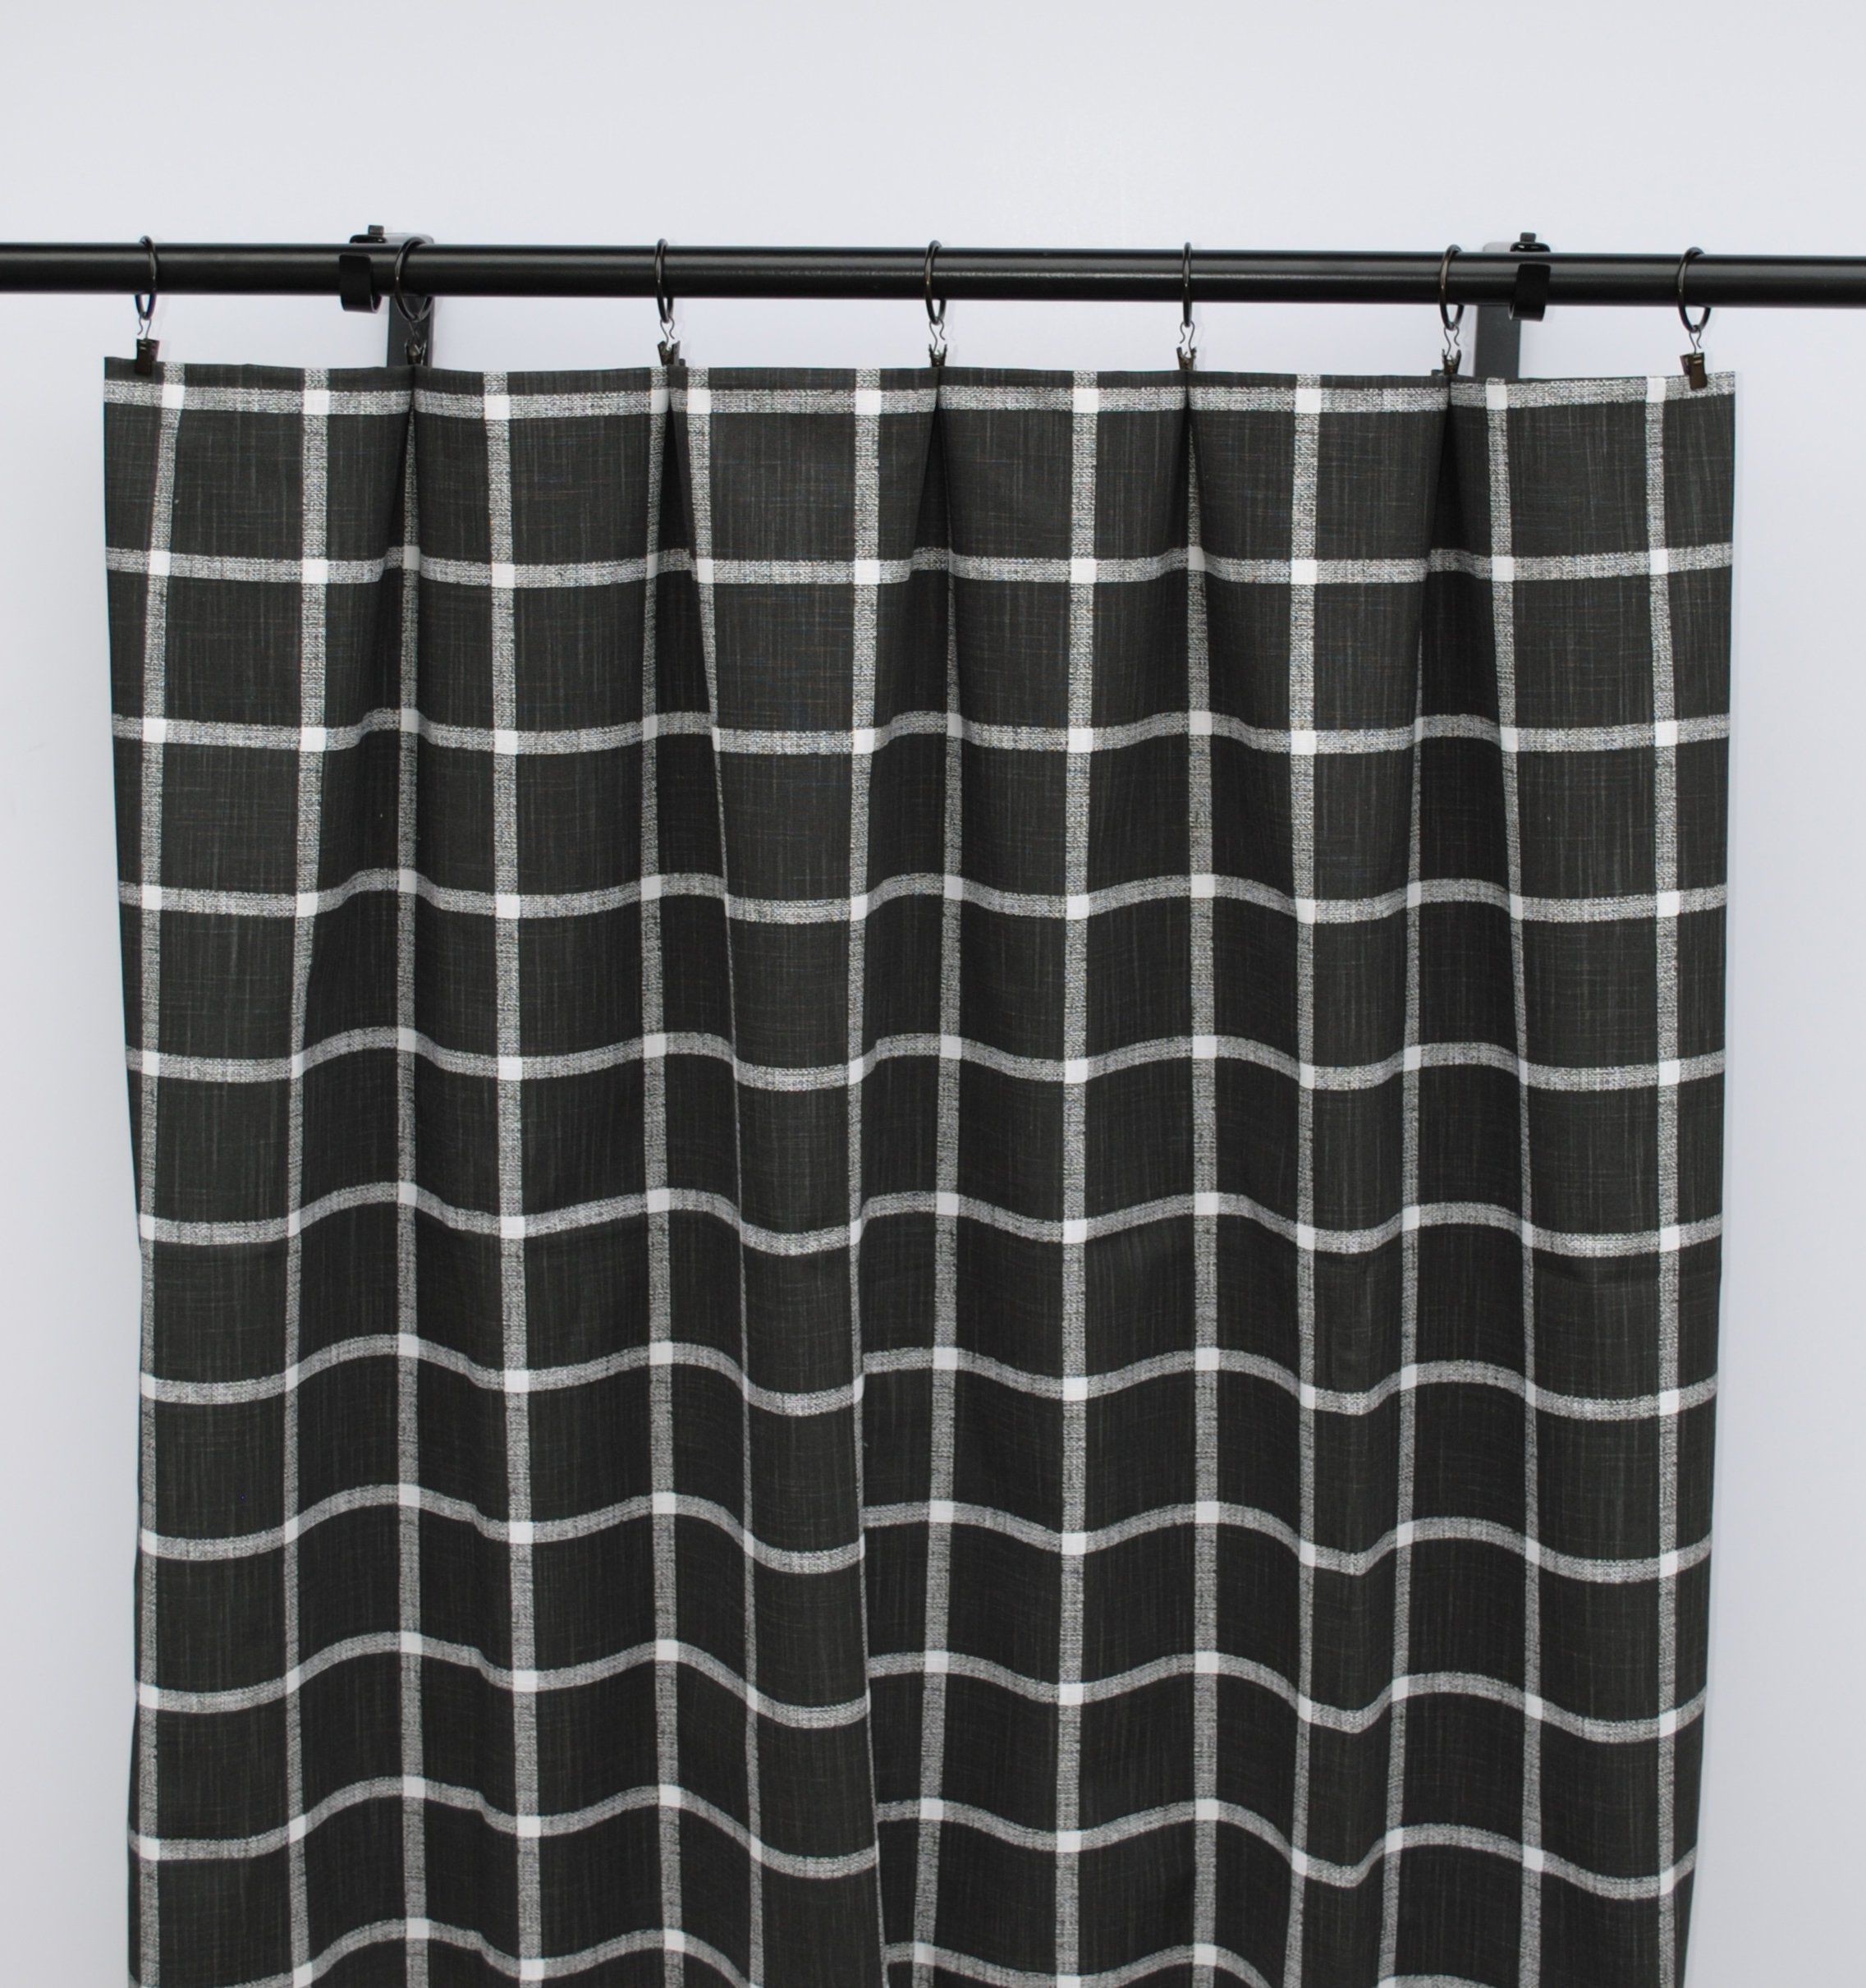 Black And White Checkered Curtains Checkered Curtain 2 Curtain Panels Curtains Home Decor Black And White Curtain Black Curtains White Curtains Panel Curtains